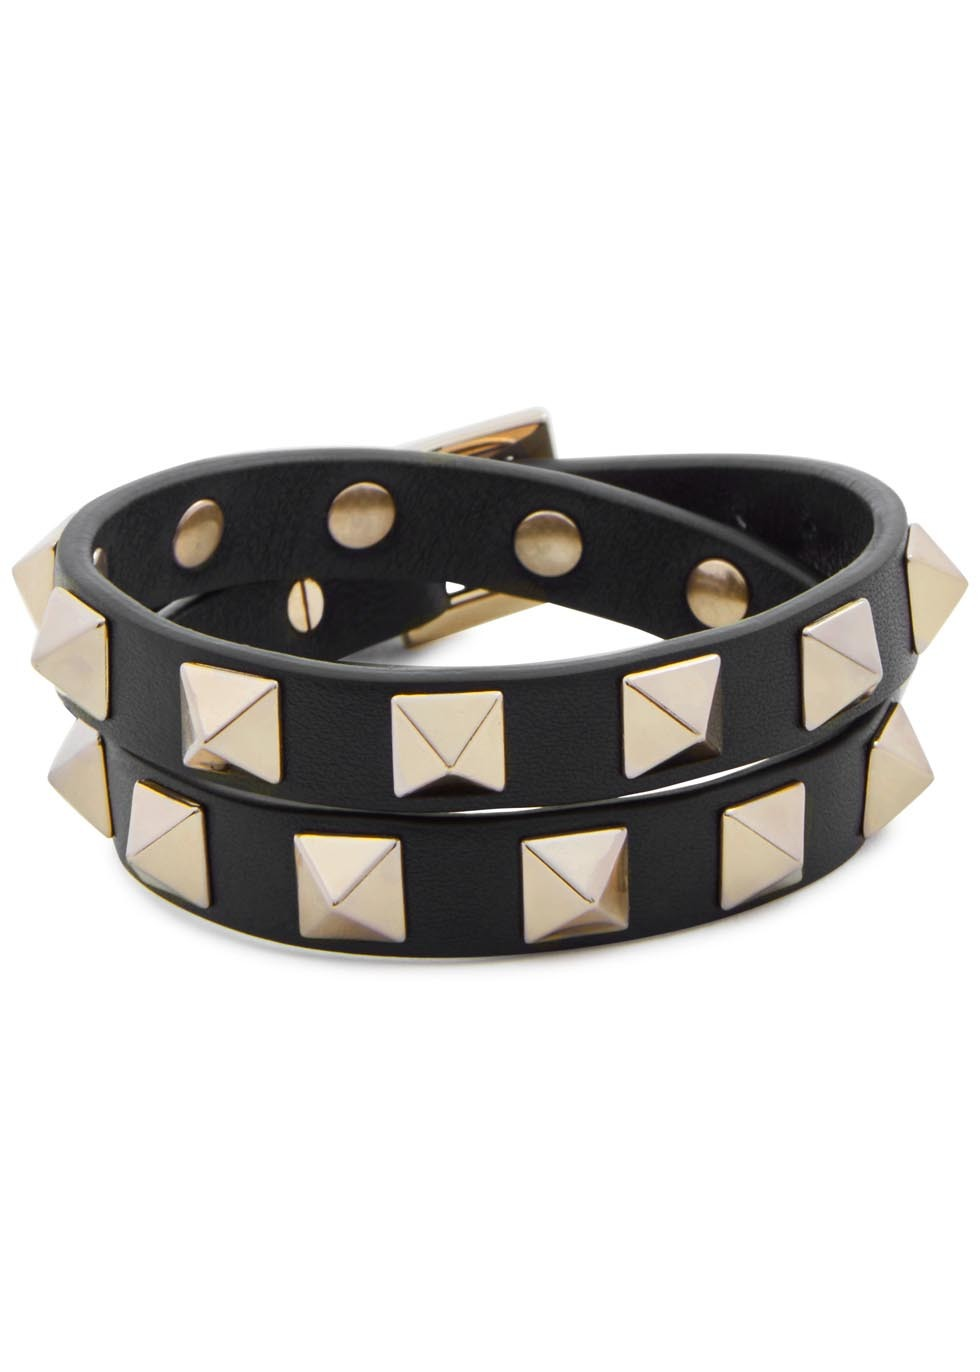 Rockstud Double Black Leather Bracelet - secondary colour: gold; predominant colour: black; occasions: casual, creative work; style: buckle/wrap; size: large/oversized; material: leather; finish: plain; embellishment: studs; season: s/s 2016; wardrobe: highlight